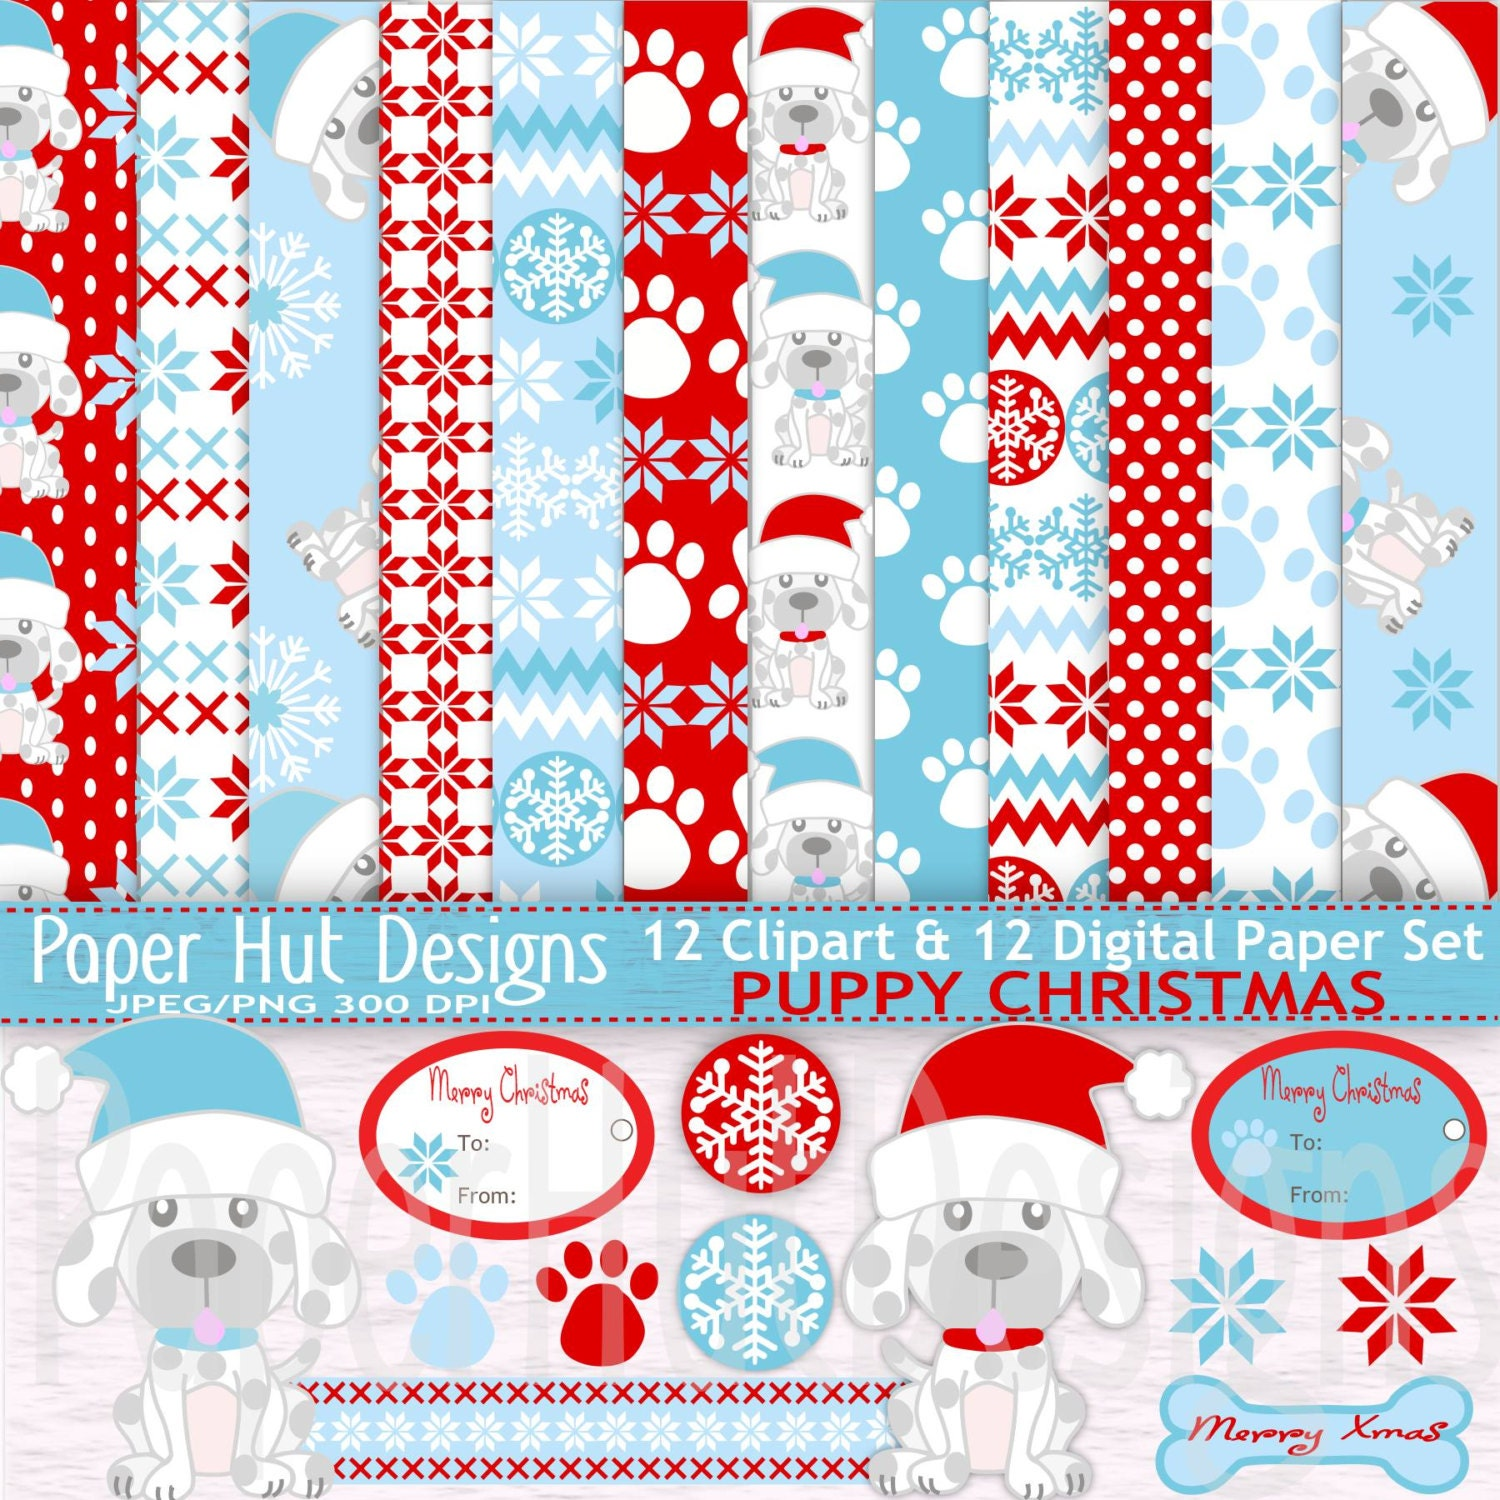 Scrapbook paper dogs - Christmas Digital Papers Christmas Clipart Paper Set Holiday Christmas Puppy Dog Clip Art Paws Labels Blue And Red